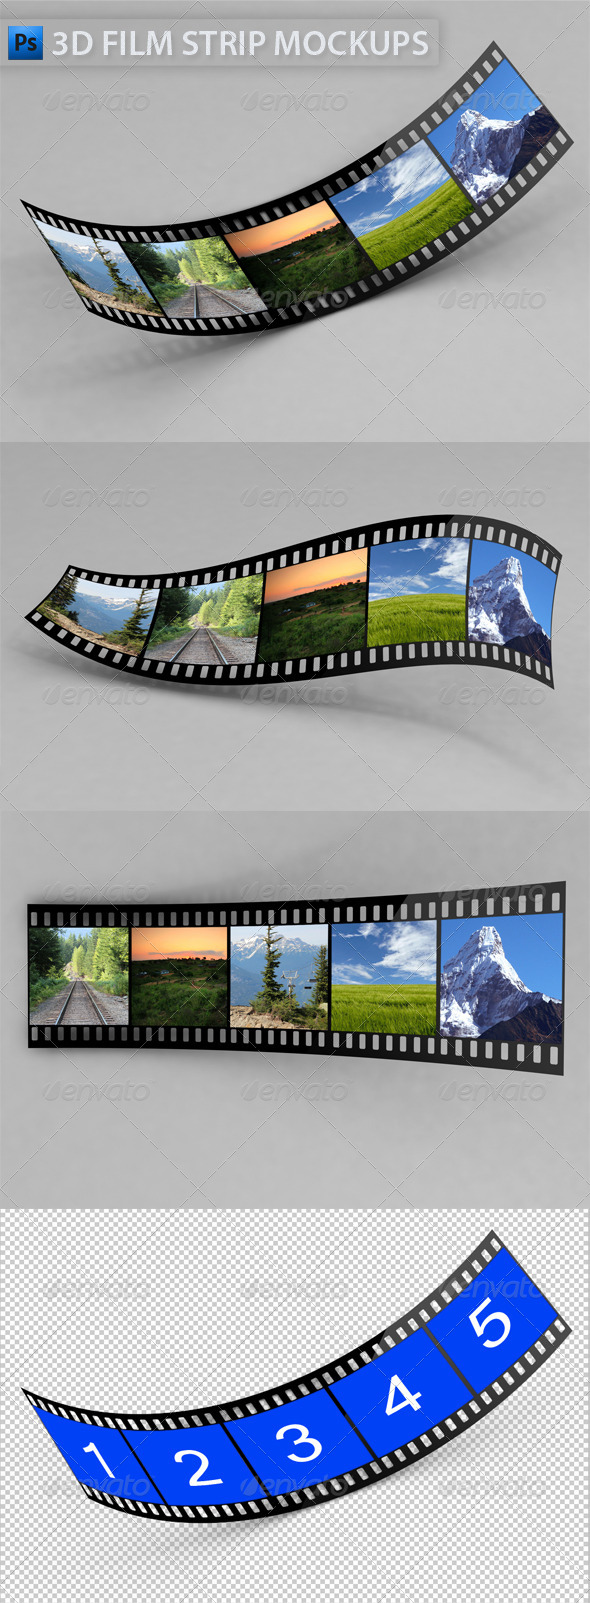 3D Film Strip Mock-Ups - Miscellaneous Photo Templates